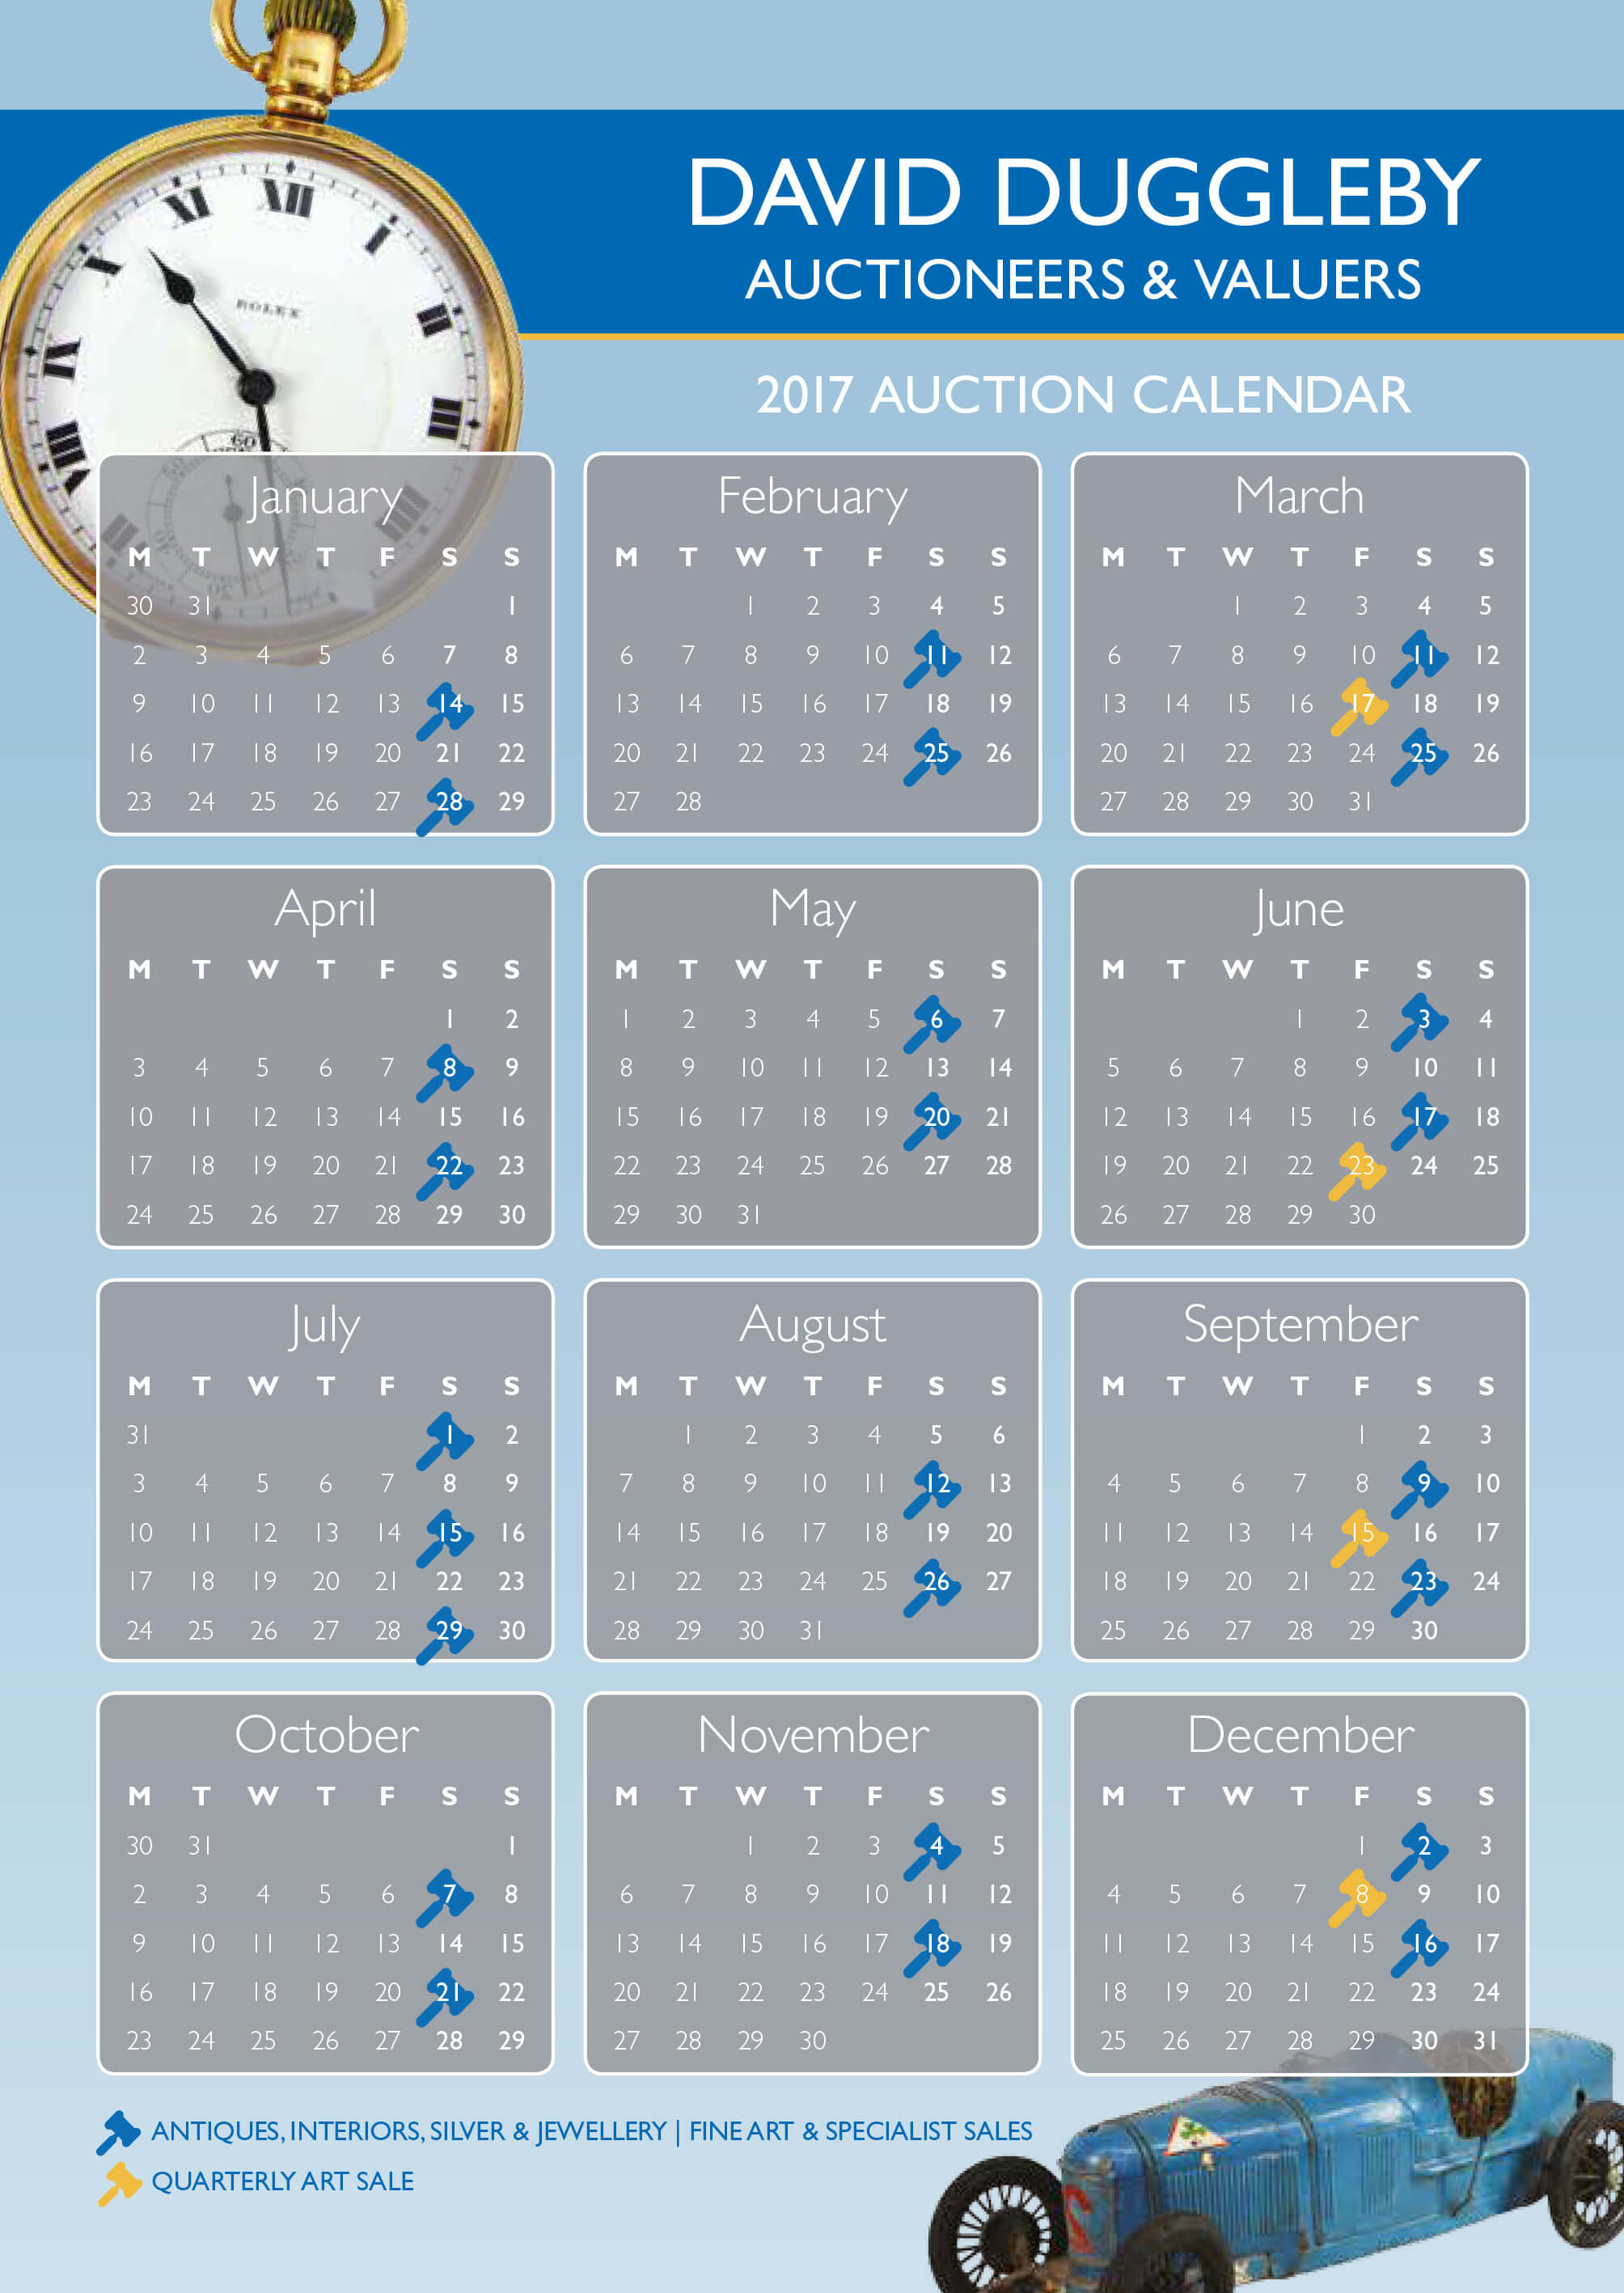 Calendar of 2017 auctions